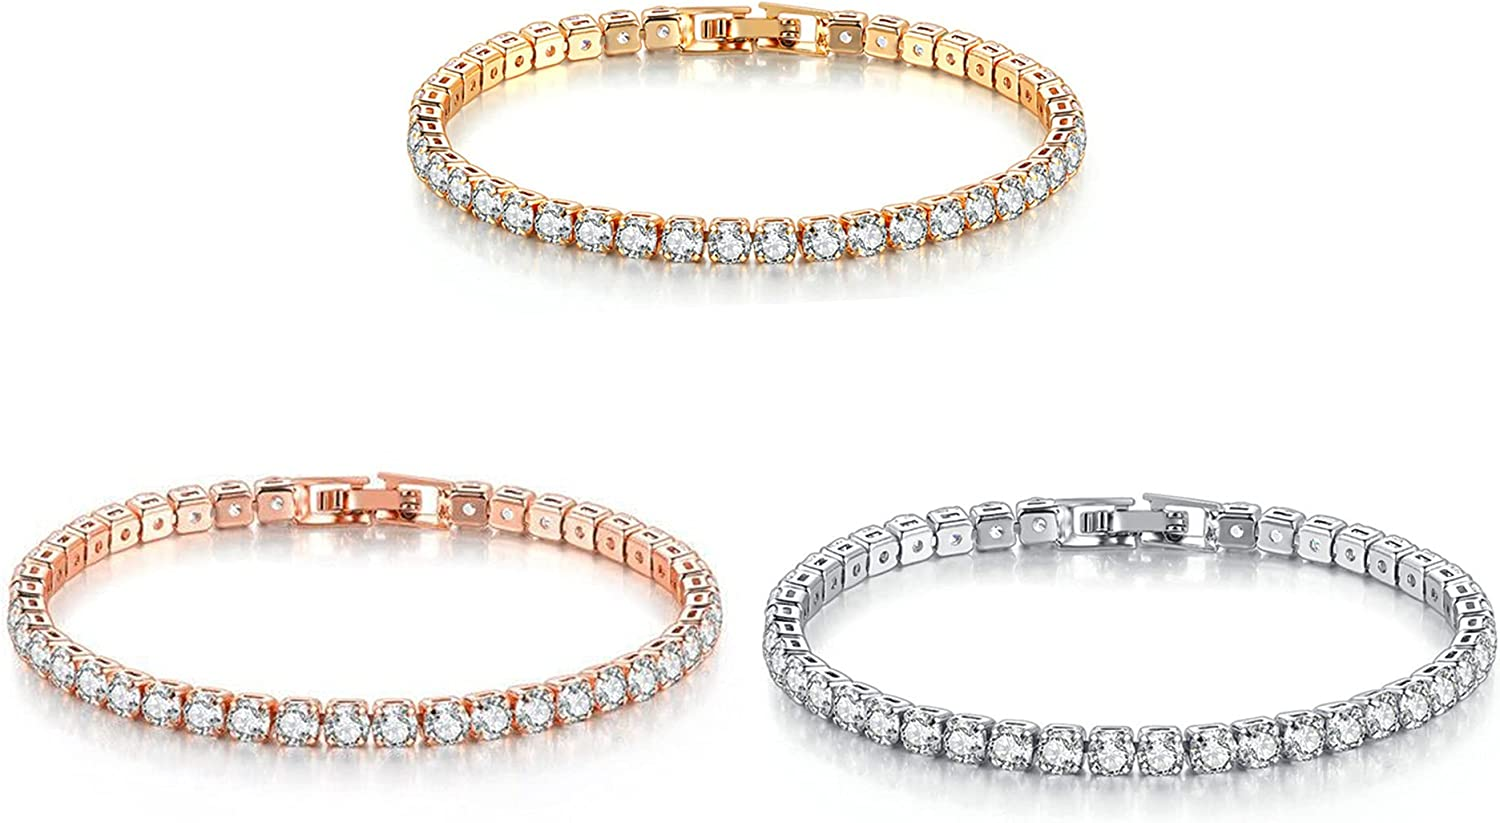 3 Pack Tennis Bracelet Cubic Pl Zirconia Silver Jewelry Free shipping on quality assurance posting reviews Sterling